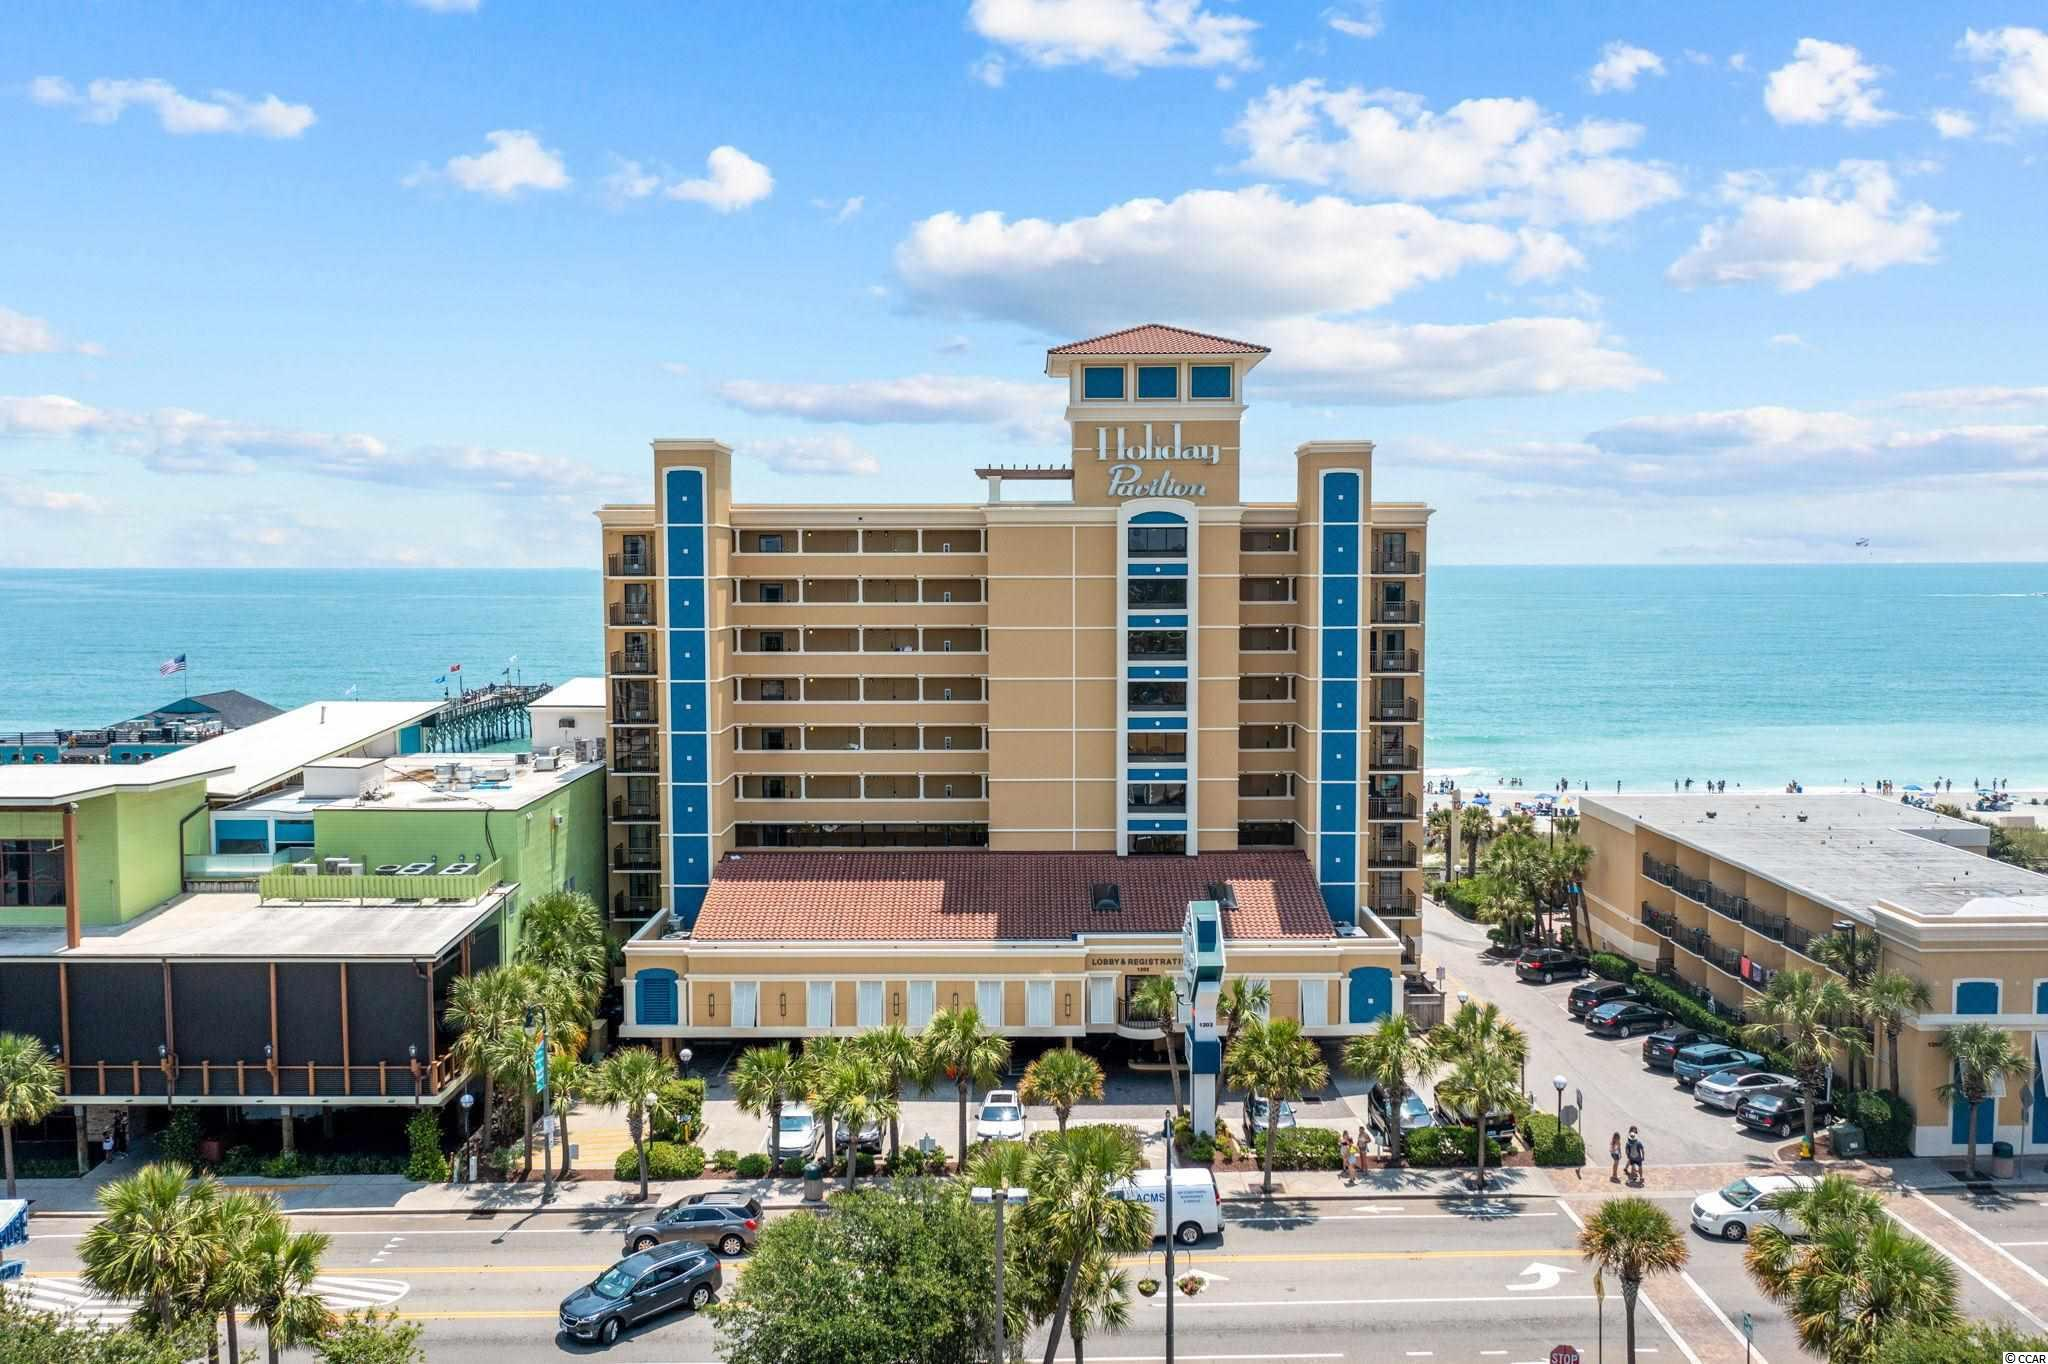 Holiday Inn Pavilion is located in the HEART of Myrtle Beach! Within walking distance of the Grand Strands top restaurants, Sky Wheel and the boardwalk! The unit boasts a beautiful oceanfront view from the 9th floor! Enjoy a cold drink at the Tiki Bar or cruise the lazy river! This building as many amenities to keep you entertained! This unit is not going to last long so schedule your showing today!